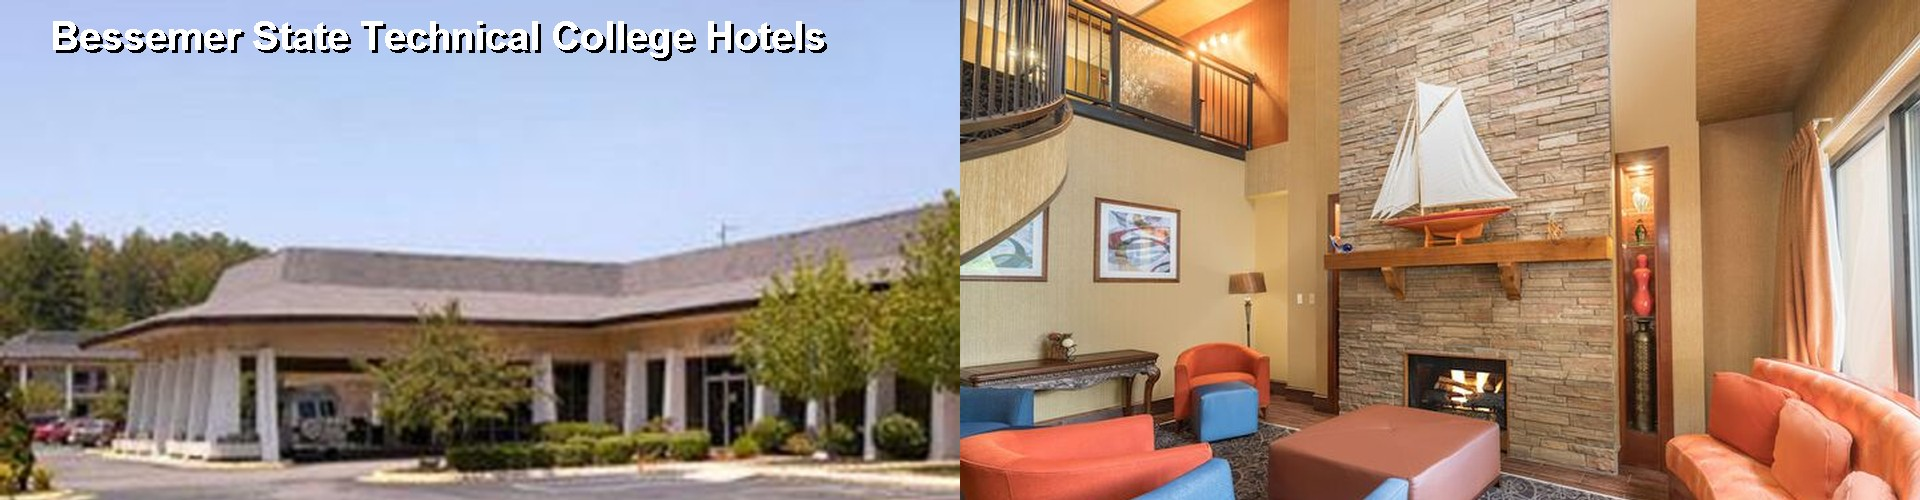 5 Best Hotels near Bessemer State Technical College